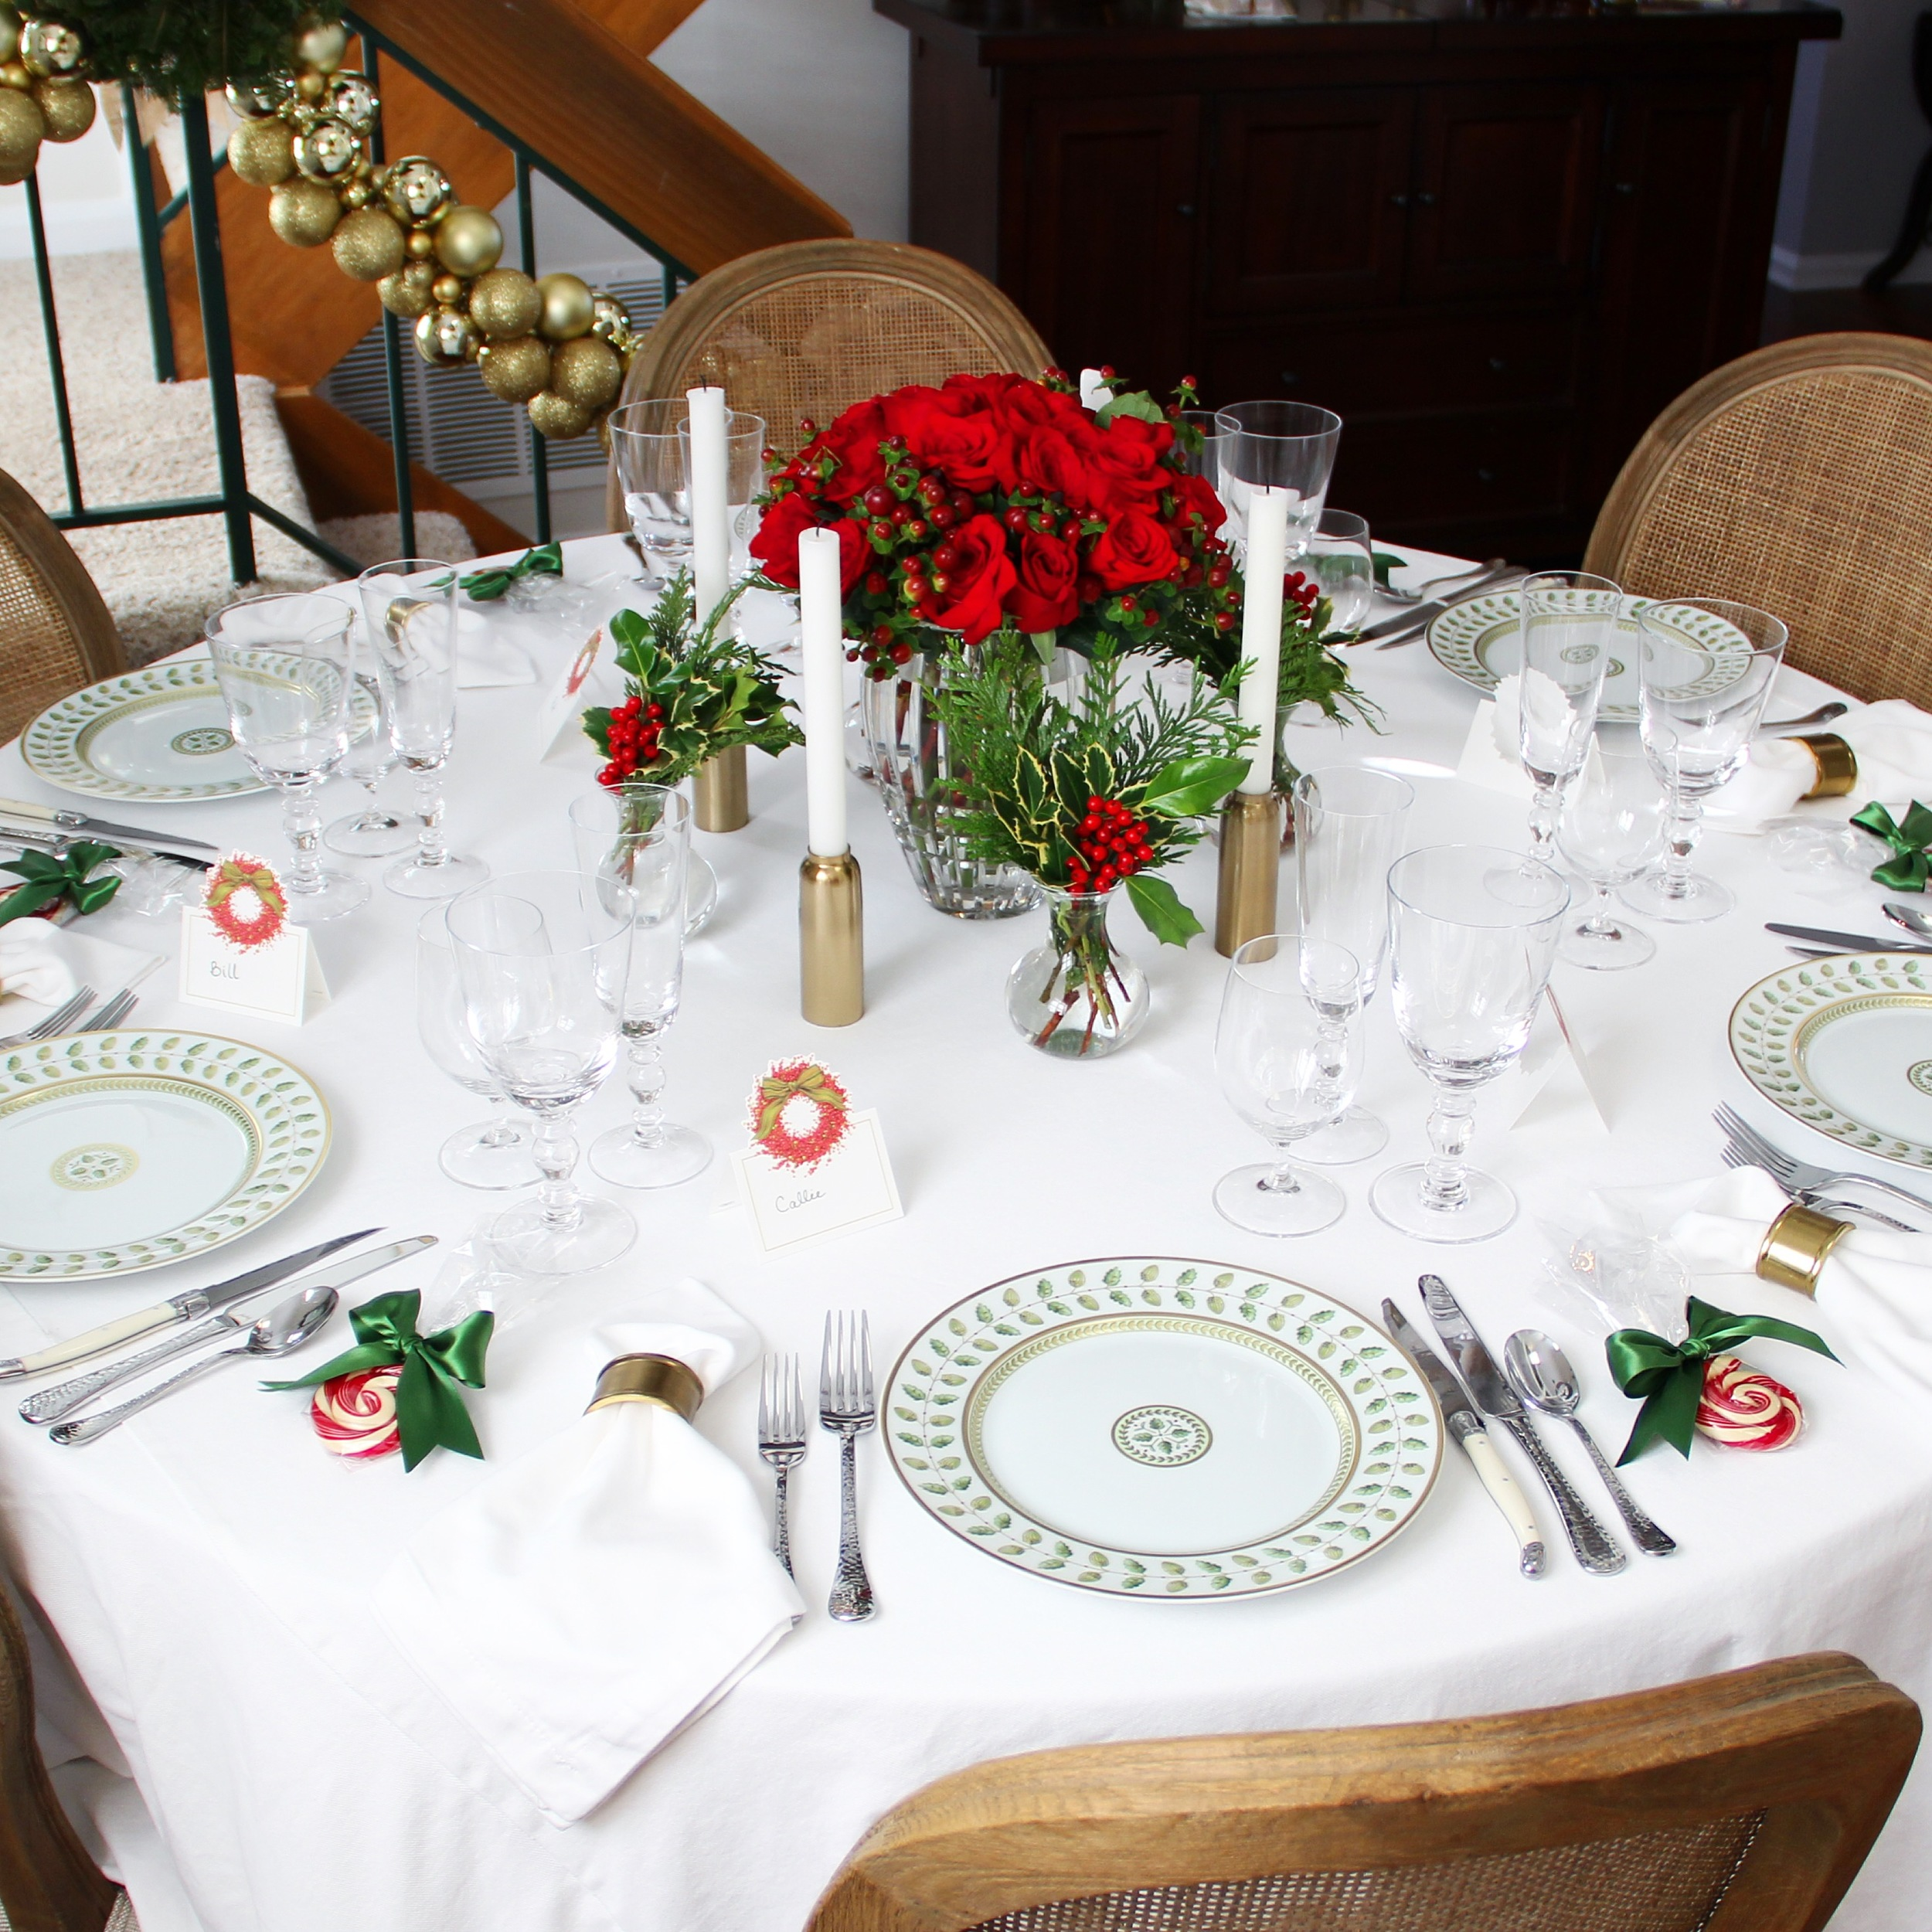 Christmas Tablescape.JPG